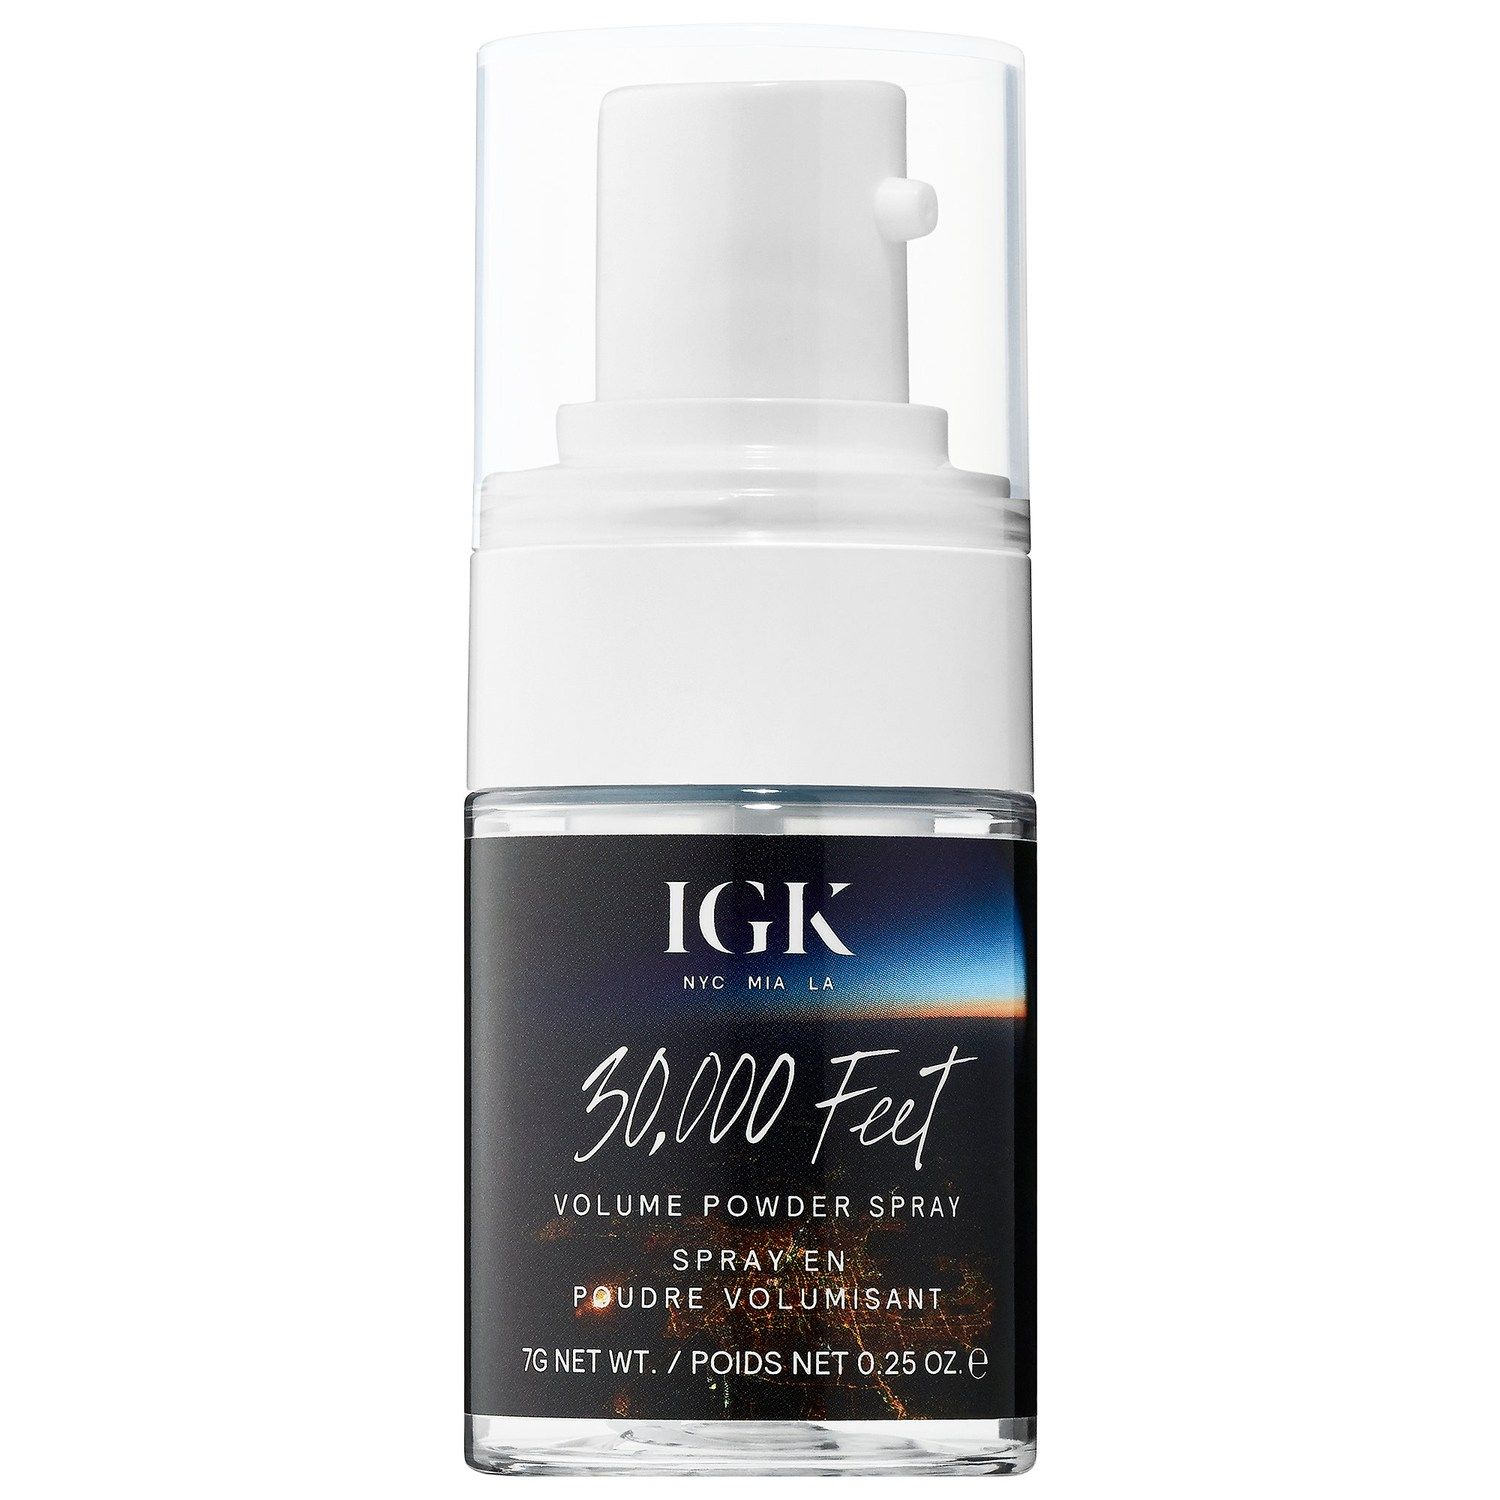 IGK 30,000 Feet Volume Powder Spray sephora.com $32.00 SHOP NOW According to celeb hairstylist Cesar Ramirez , IGK's 30,000 Feet shampoo is the one to beat. Ramirez, who has worked with everyone from Kim Kardashian to Demi Lovato, likes it because the formula is really lightweight and works for all hair types.